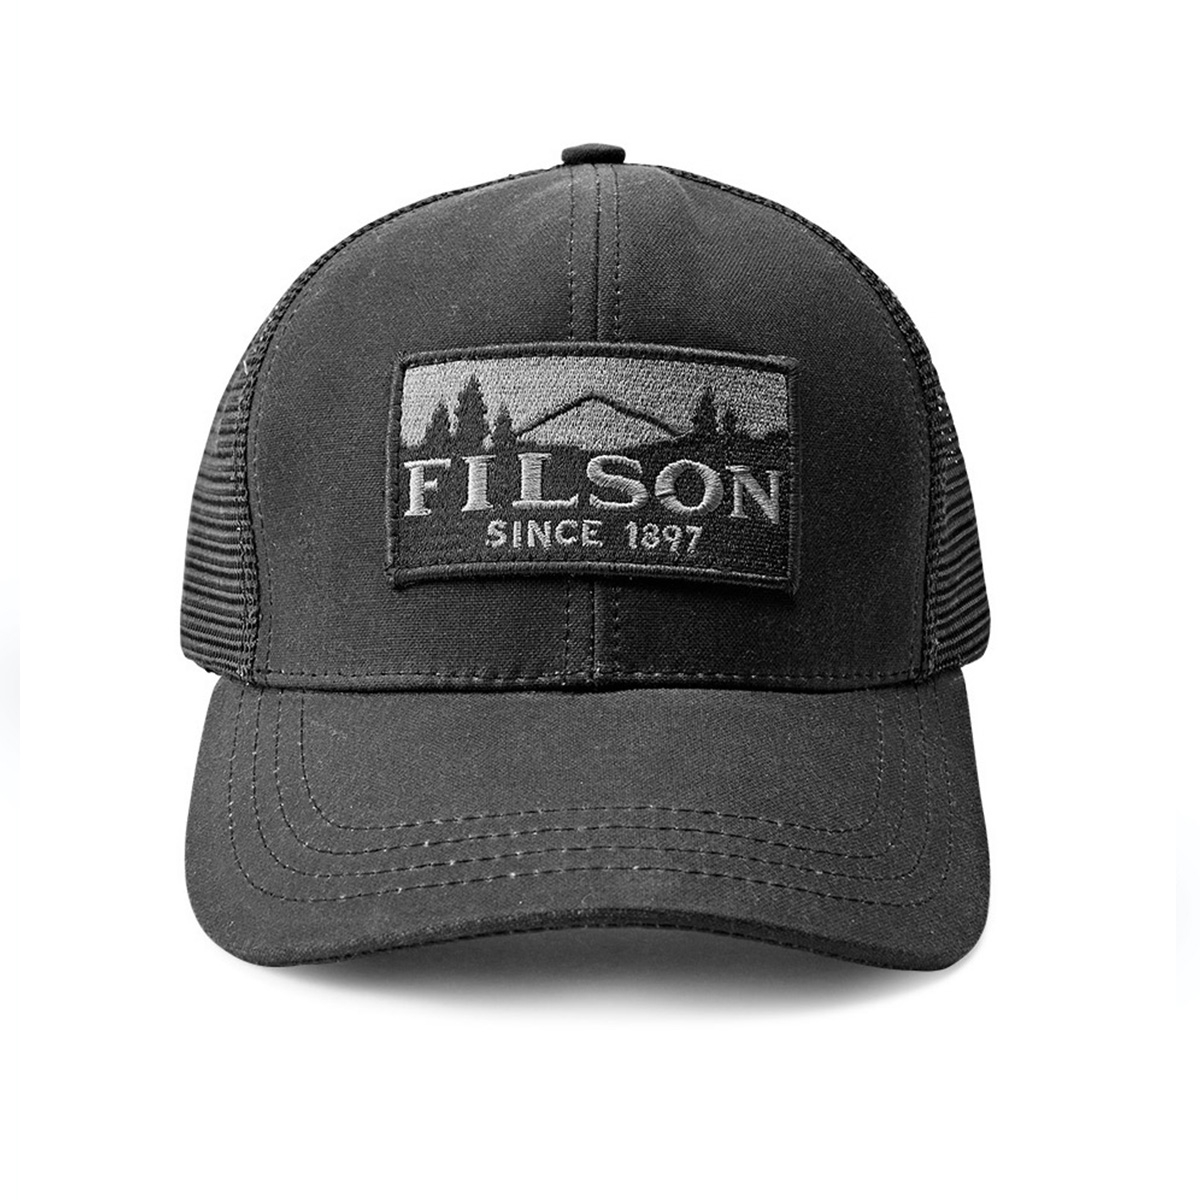 Filson Logger Mesh Cap 11030237-Black, durable cap made of iconic, water-repellent Tin Cloth